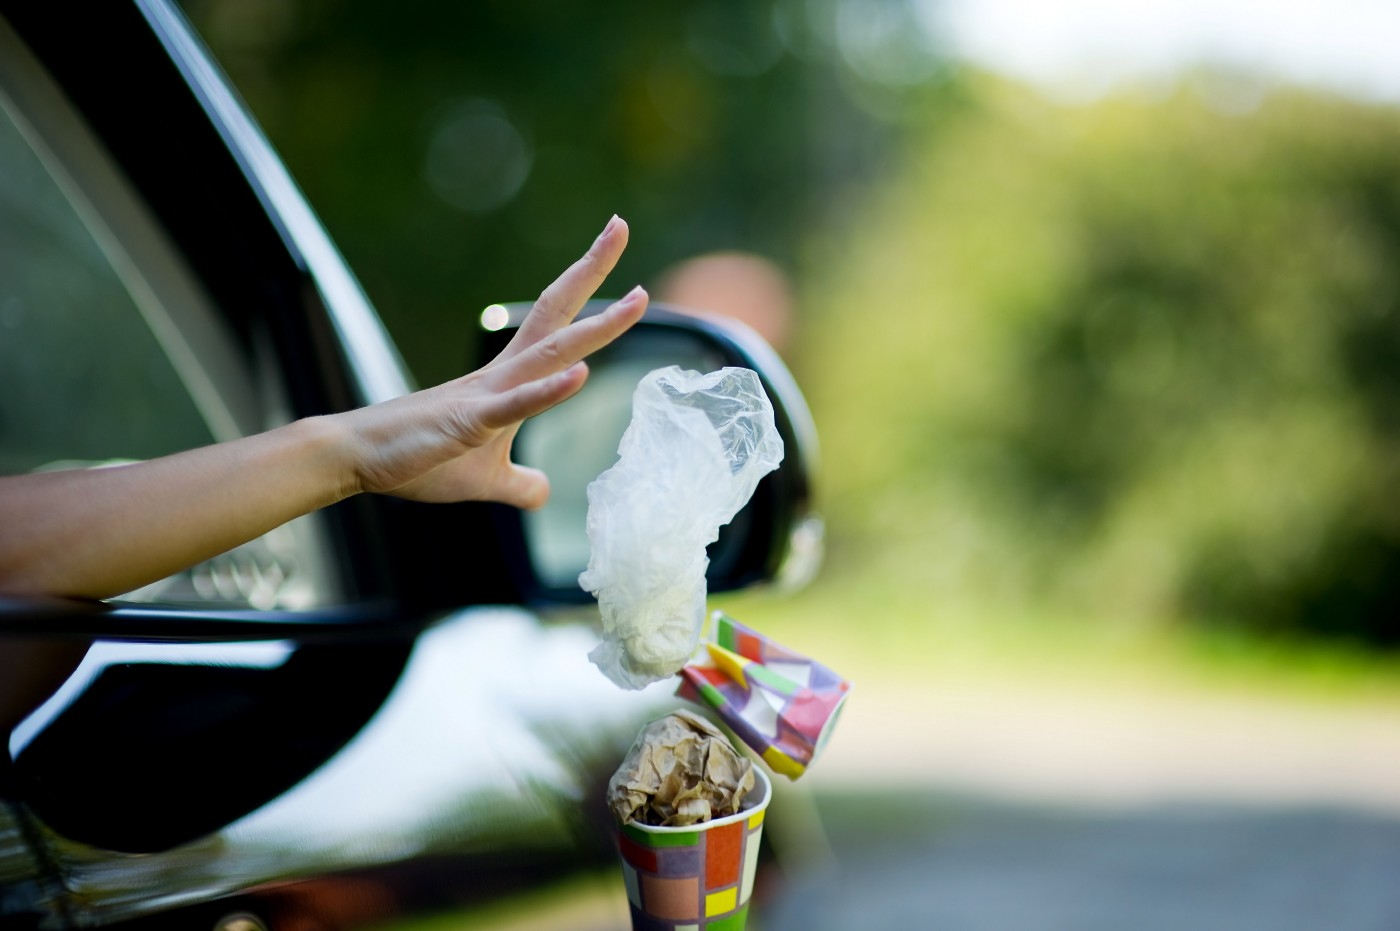 A person tosses a handful of colourful takeout garbage from a front car window.